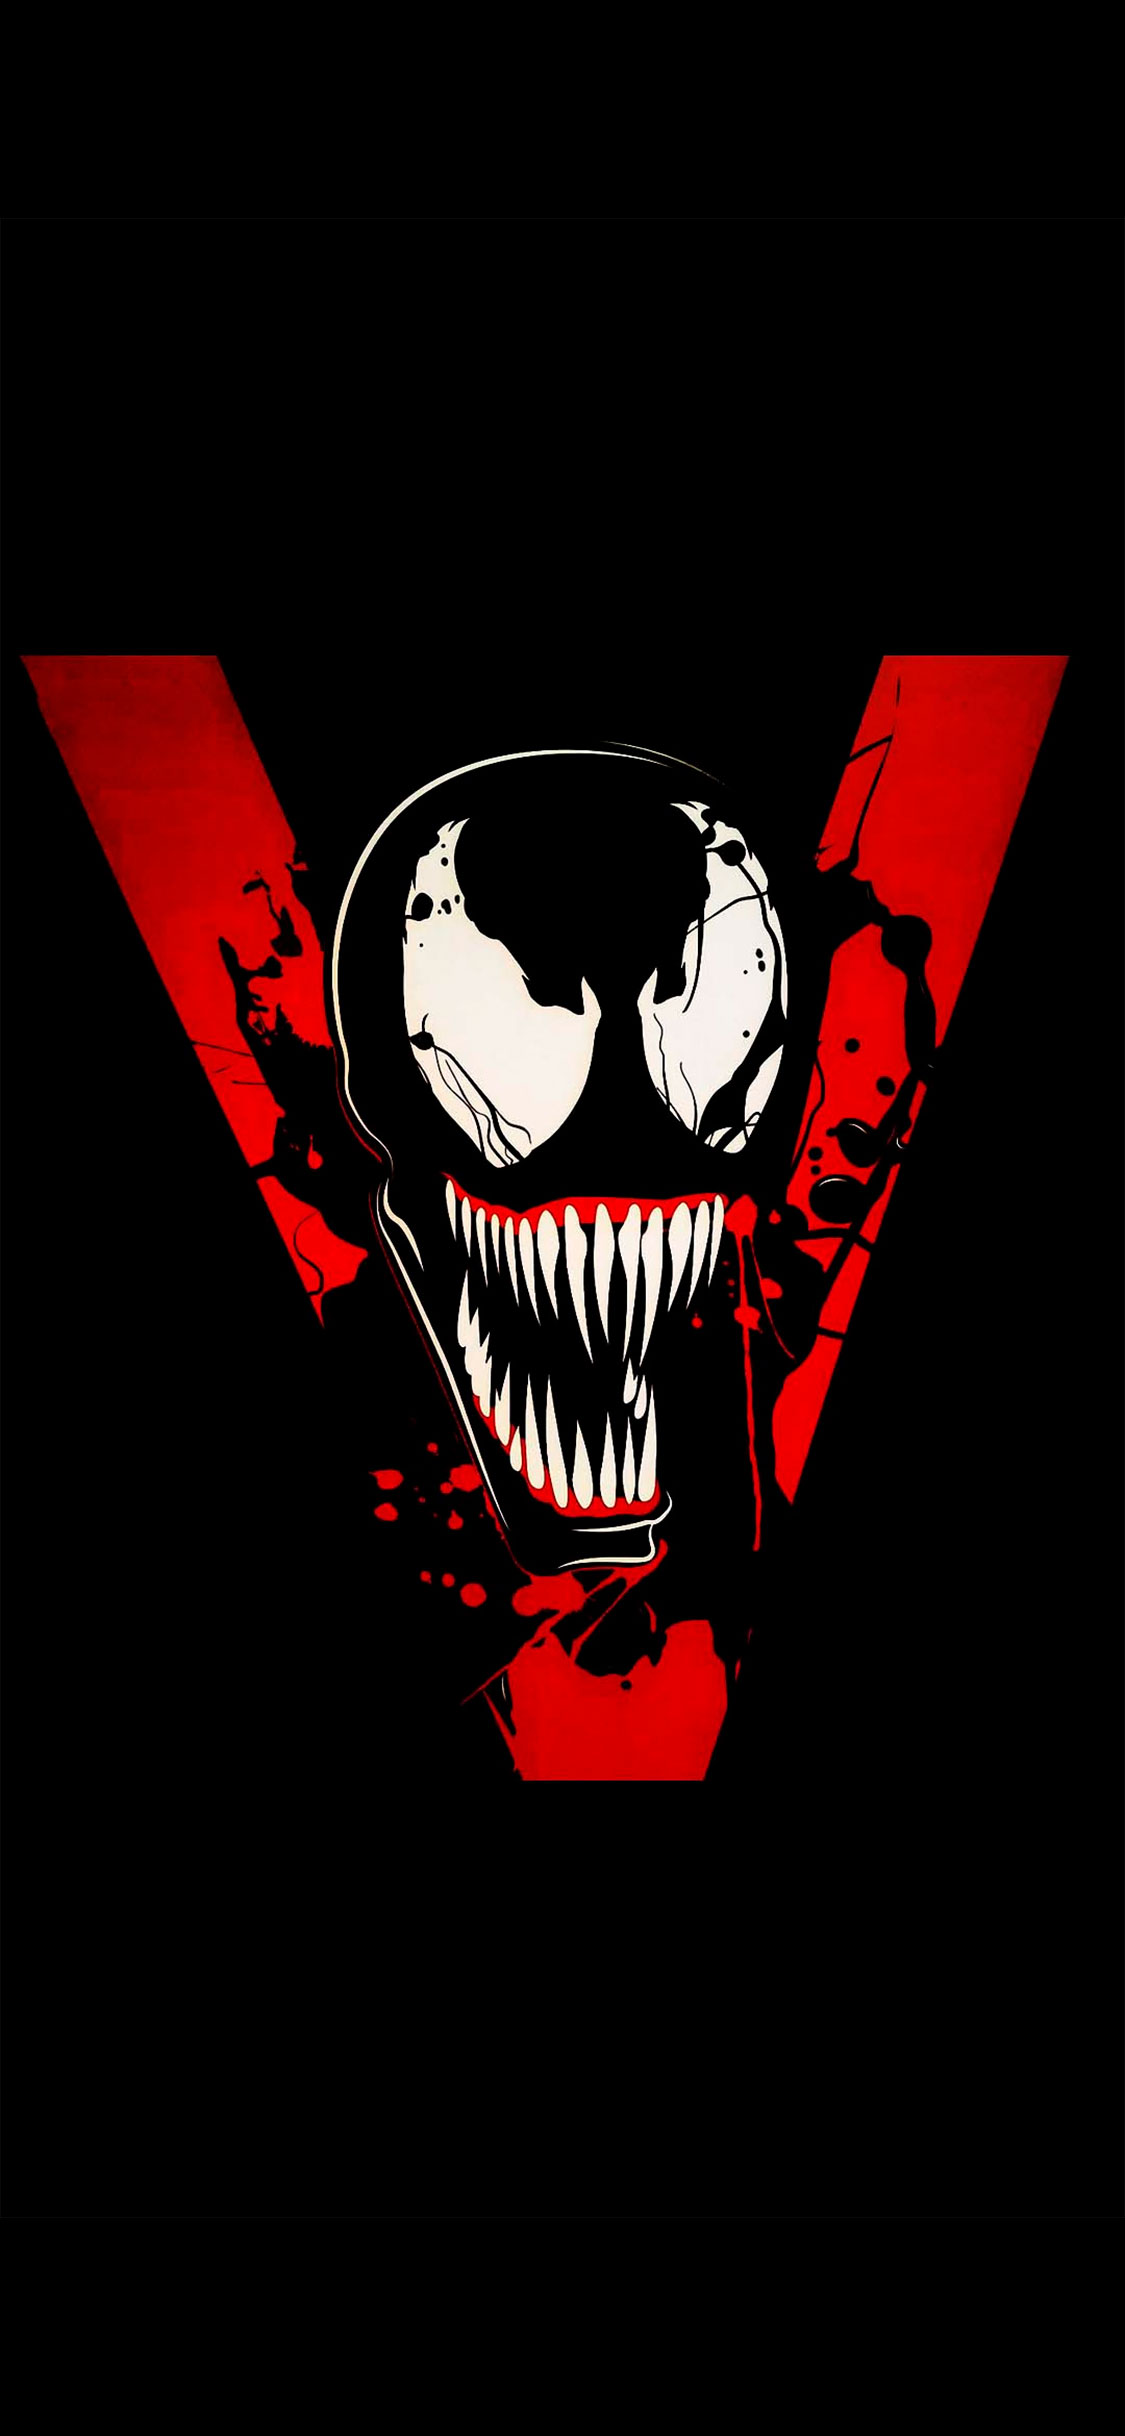 iPhone wallpaper venom2 Venom